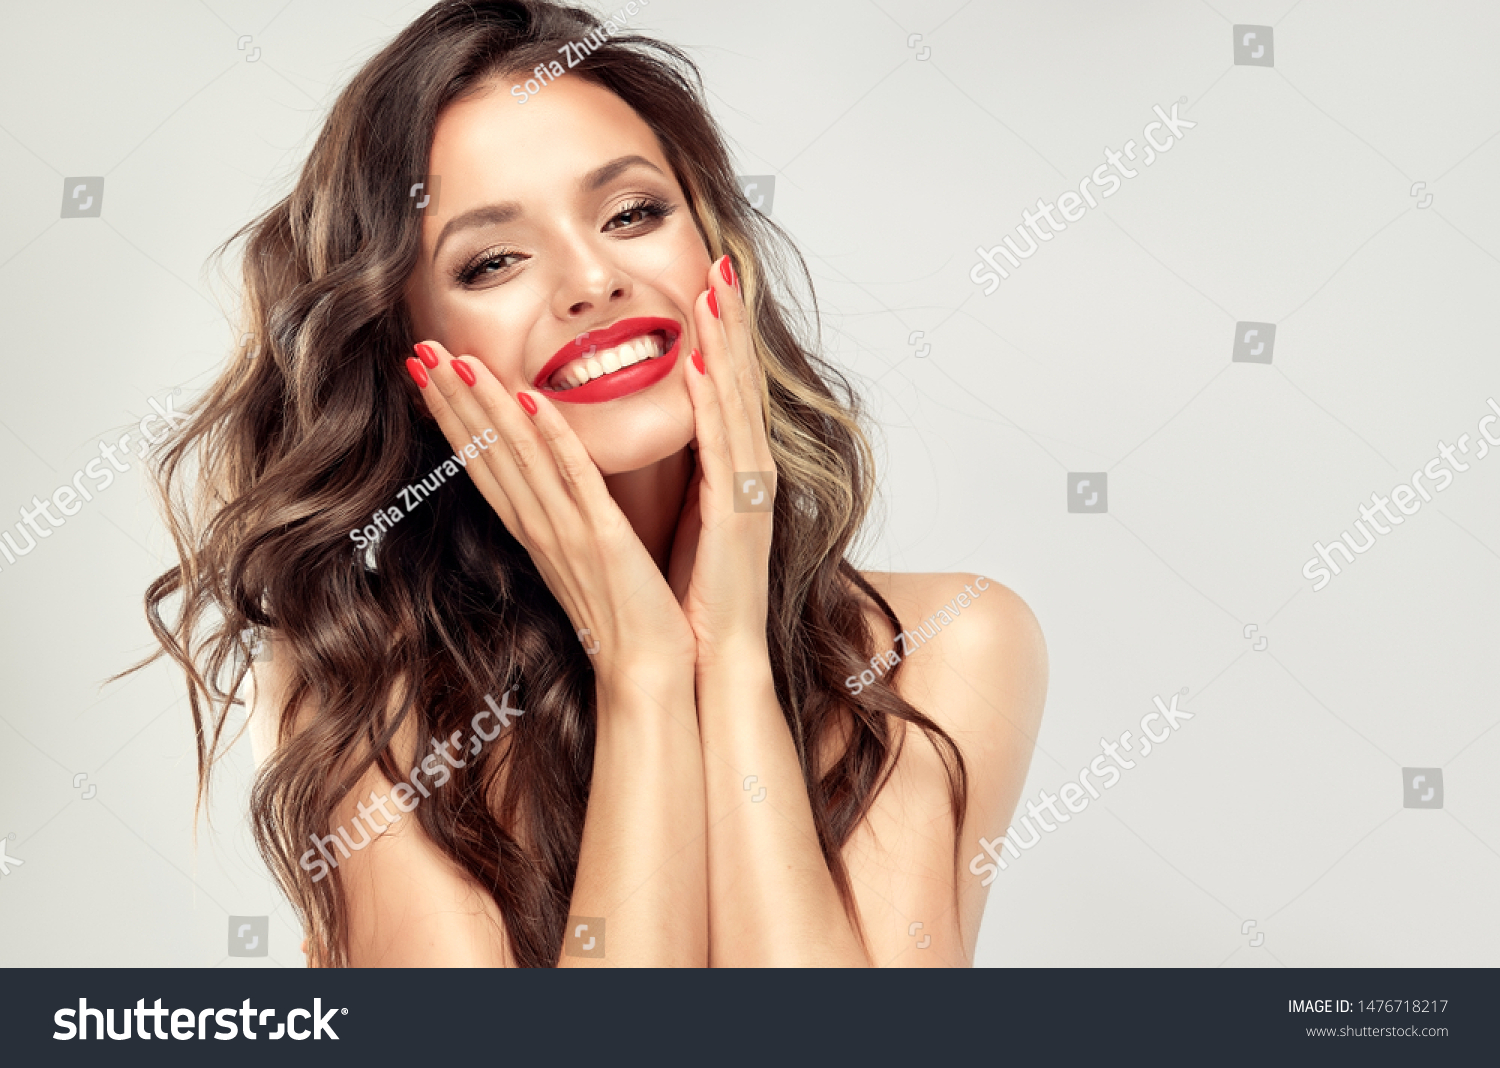 Beautiful laughing brunette model  girl  with long curly  hair . Smiling  woman hairstyle wavy curls . Red  lips and  nails manicure .    Fashion , beauty and make up portrait  #1476718217